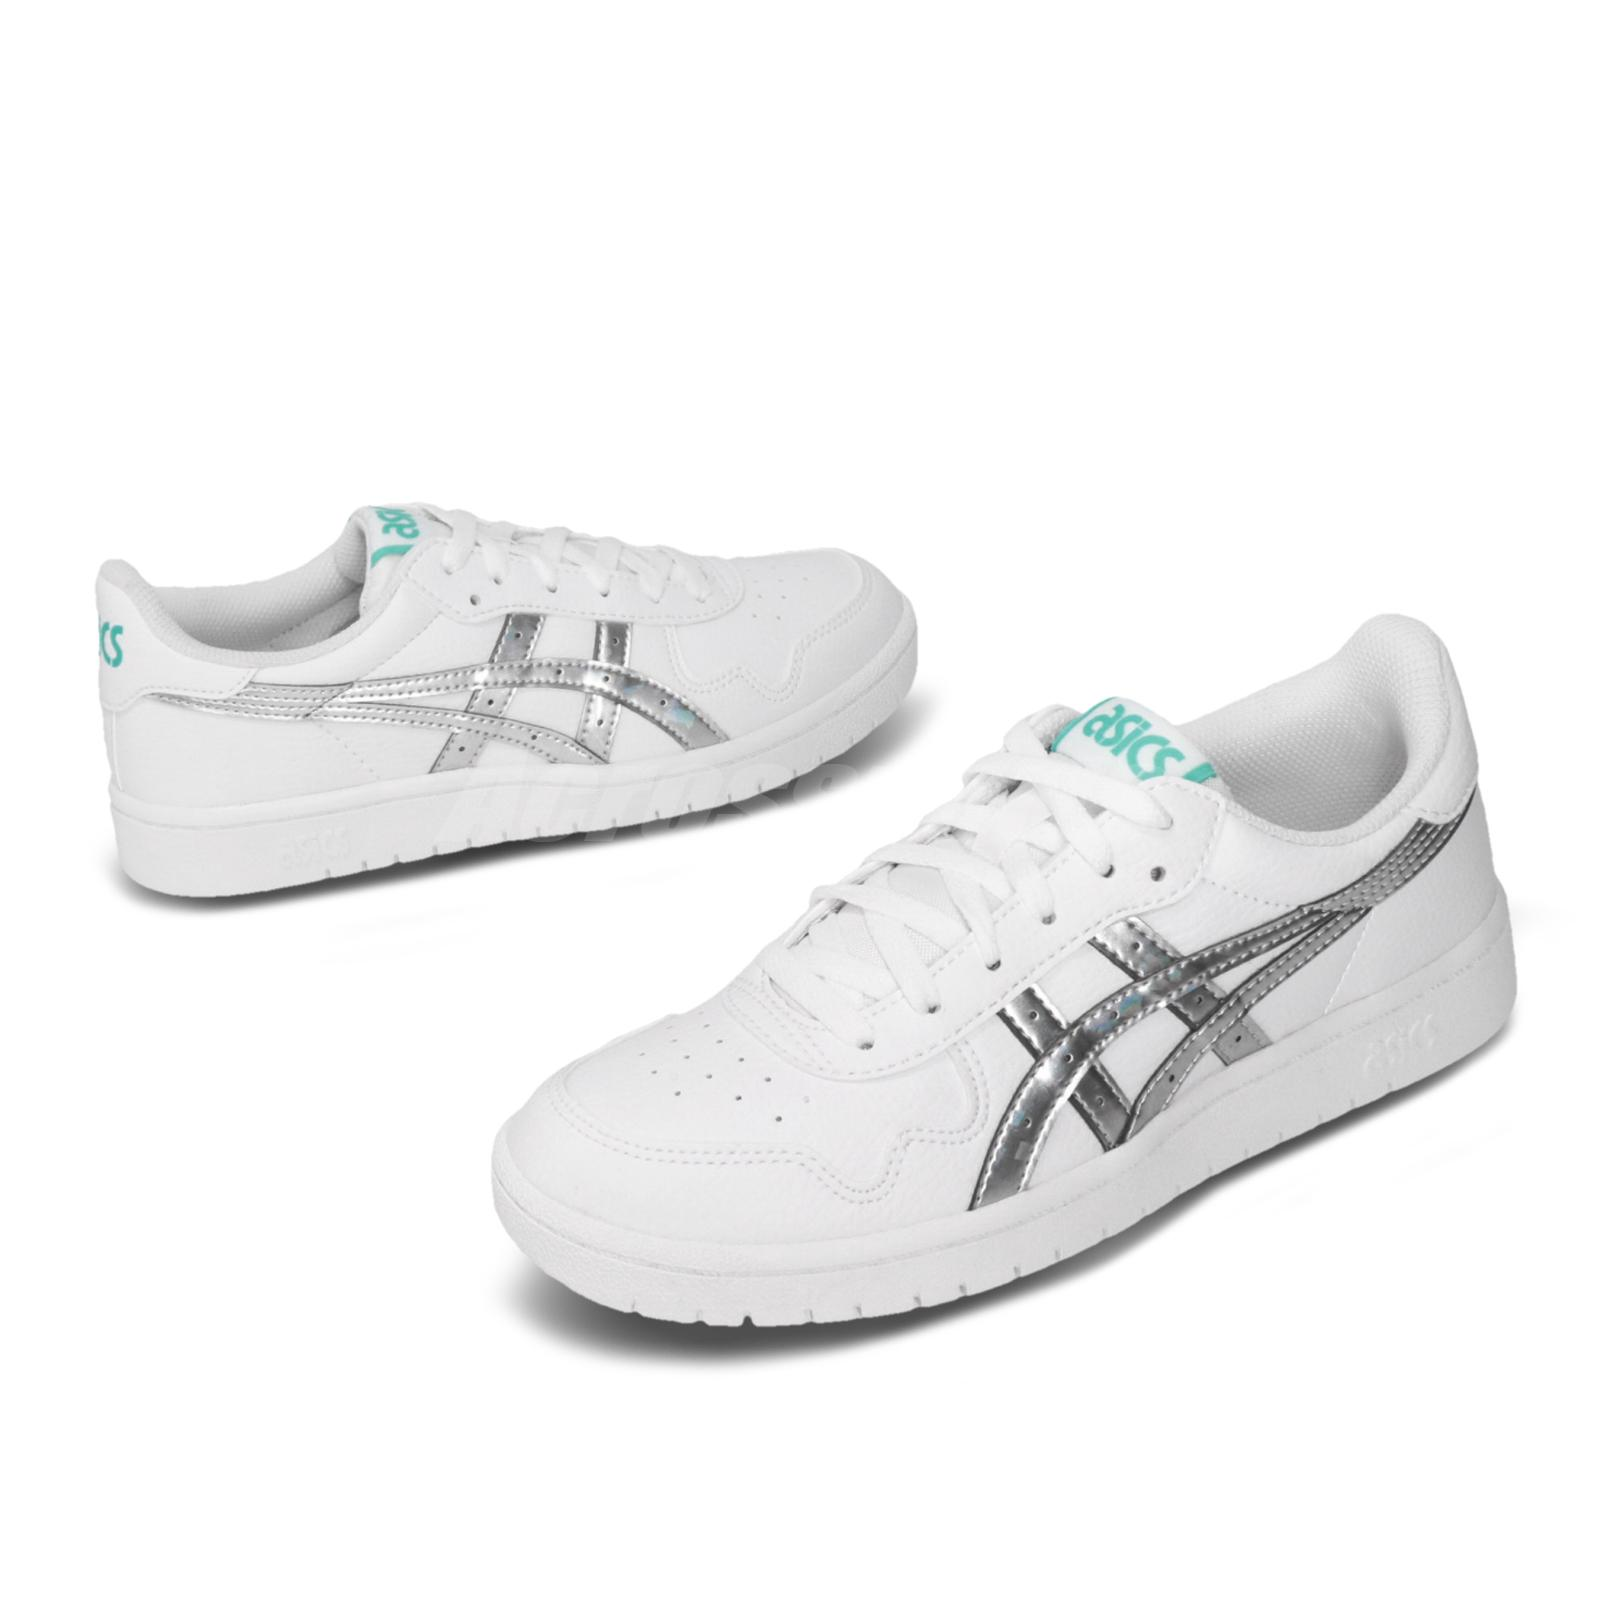 Details about Asics Tiger Japan S White Silver Women Classic Casual Shoes  Sneaker 1192A185-101